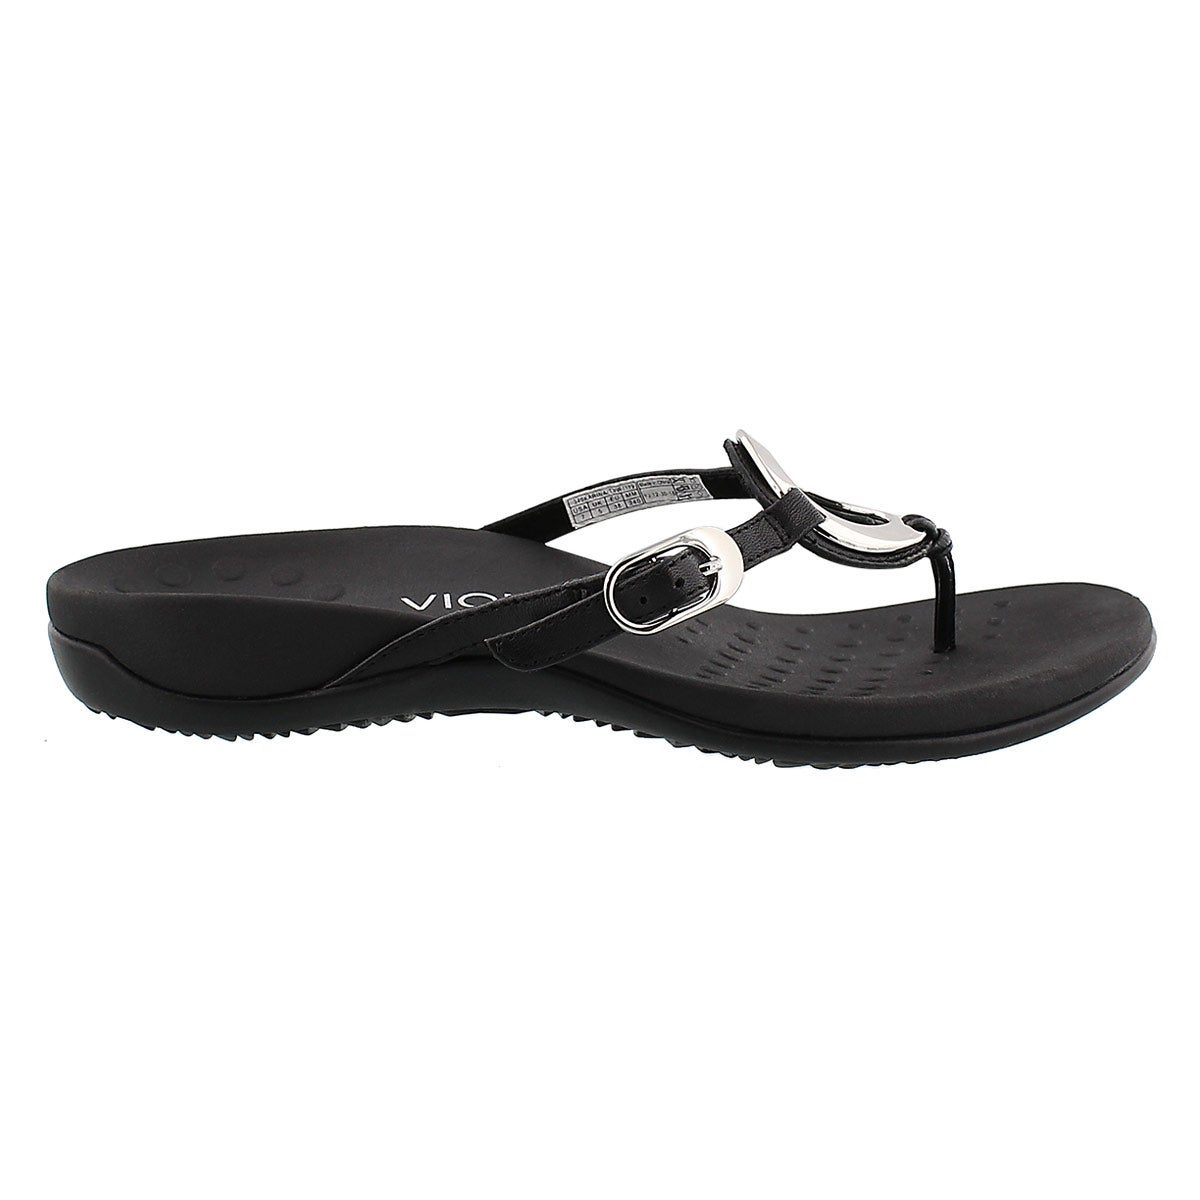 Lds Karina blk arch support thng sndl